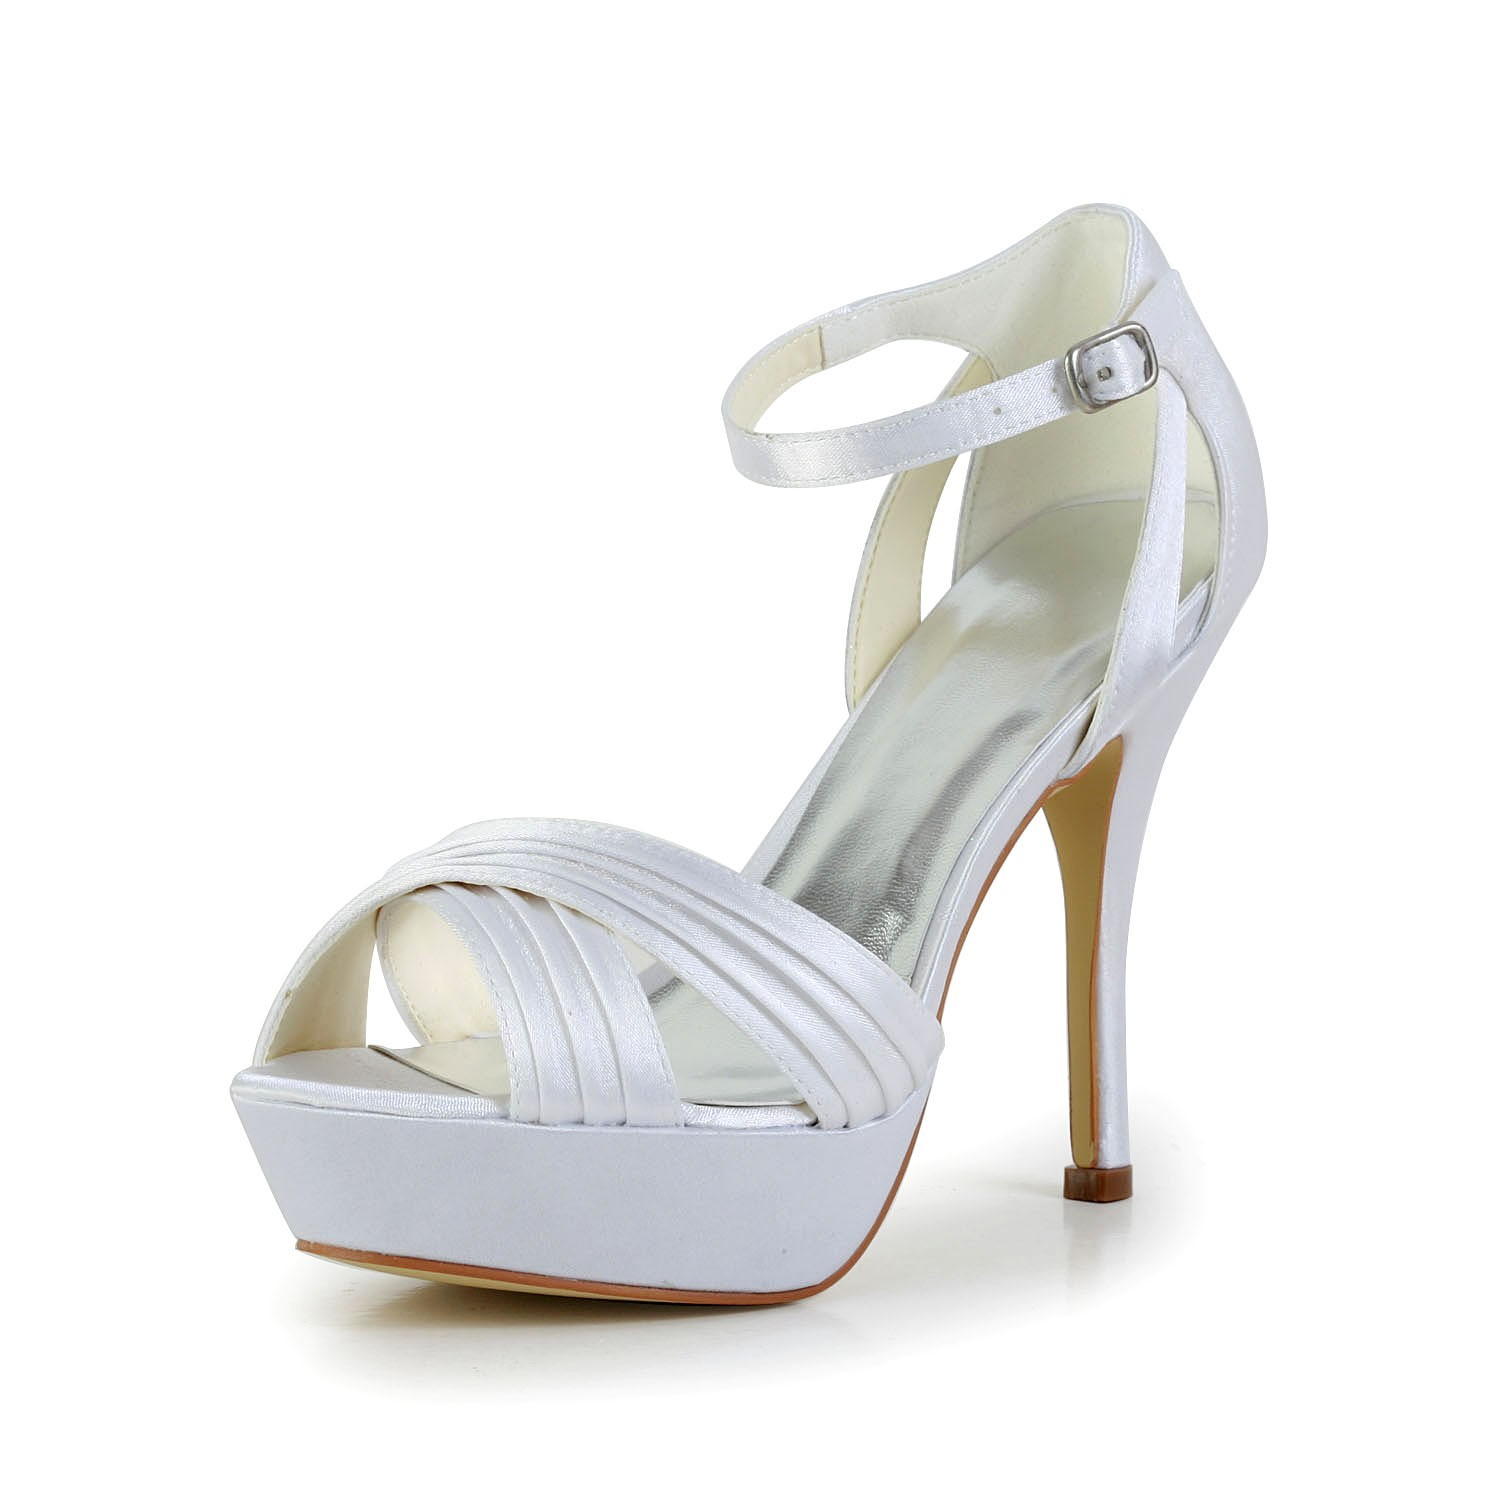 Chicregina Womens Satin Stiletto Heel Peep Toe Platform Pumps Sandals with Buckle Ruffles